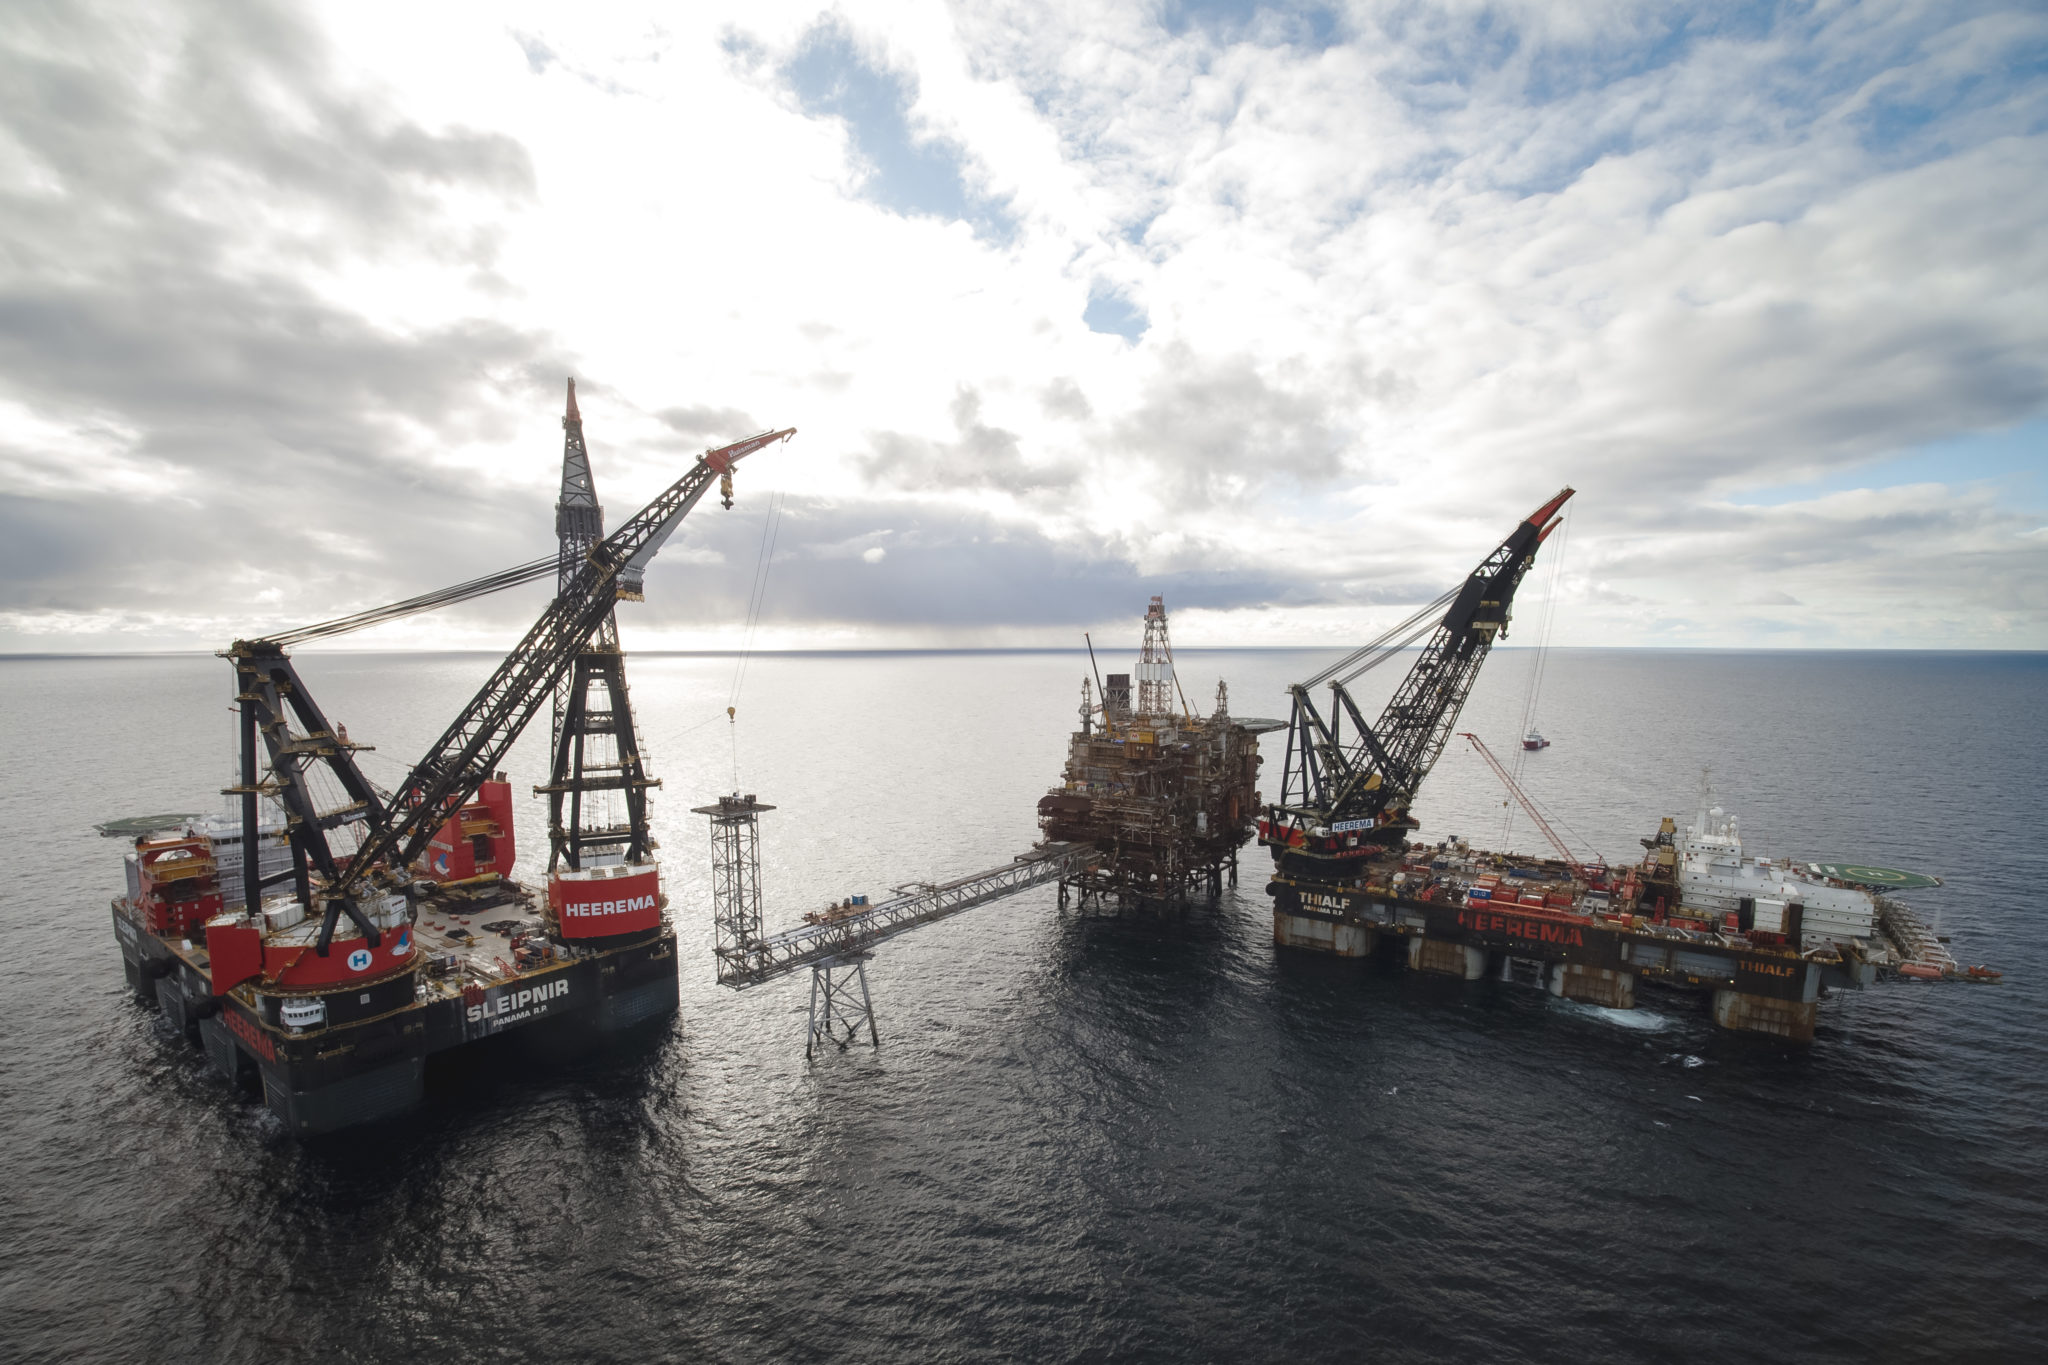 Taqa 'poised for significant decommissioning activity'